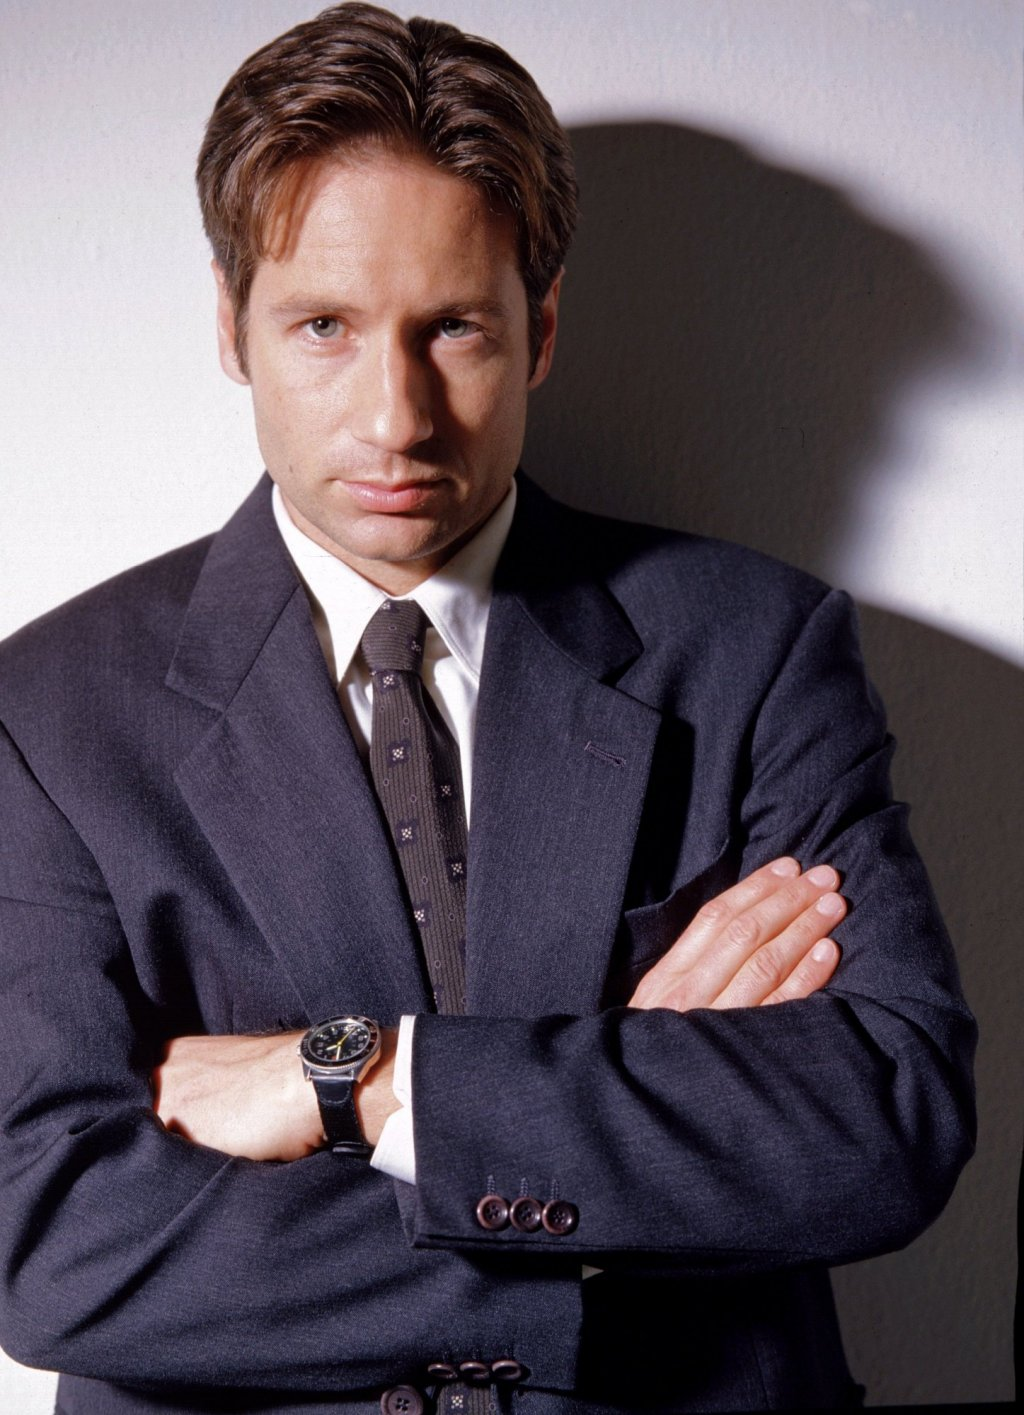 https://marciokenobi.files.wordpress.com/2013/09/fox-mulder.jpg